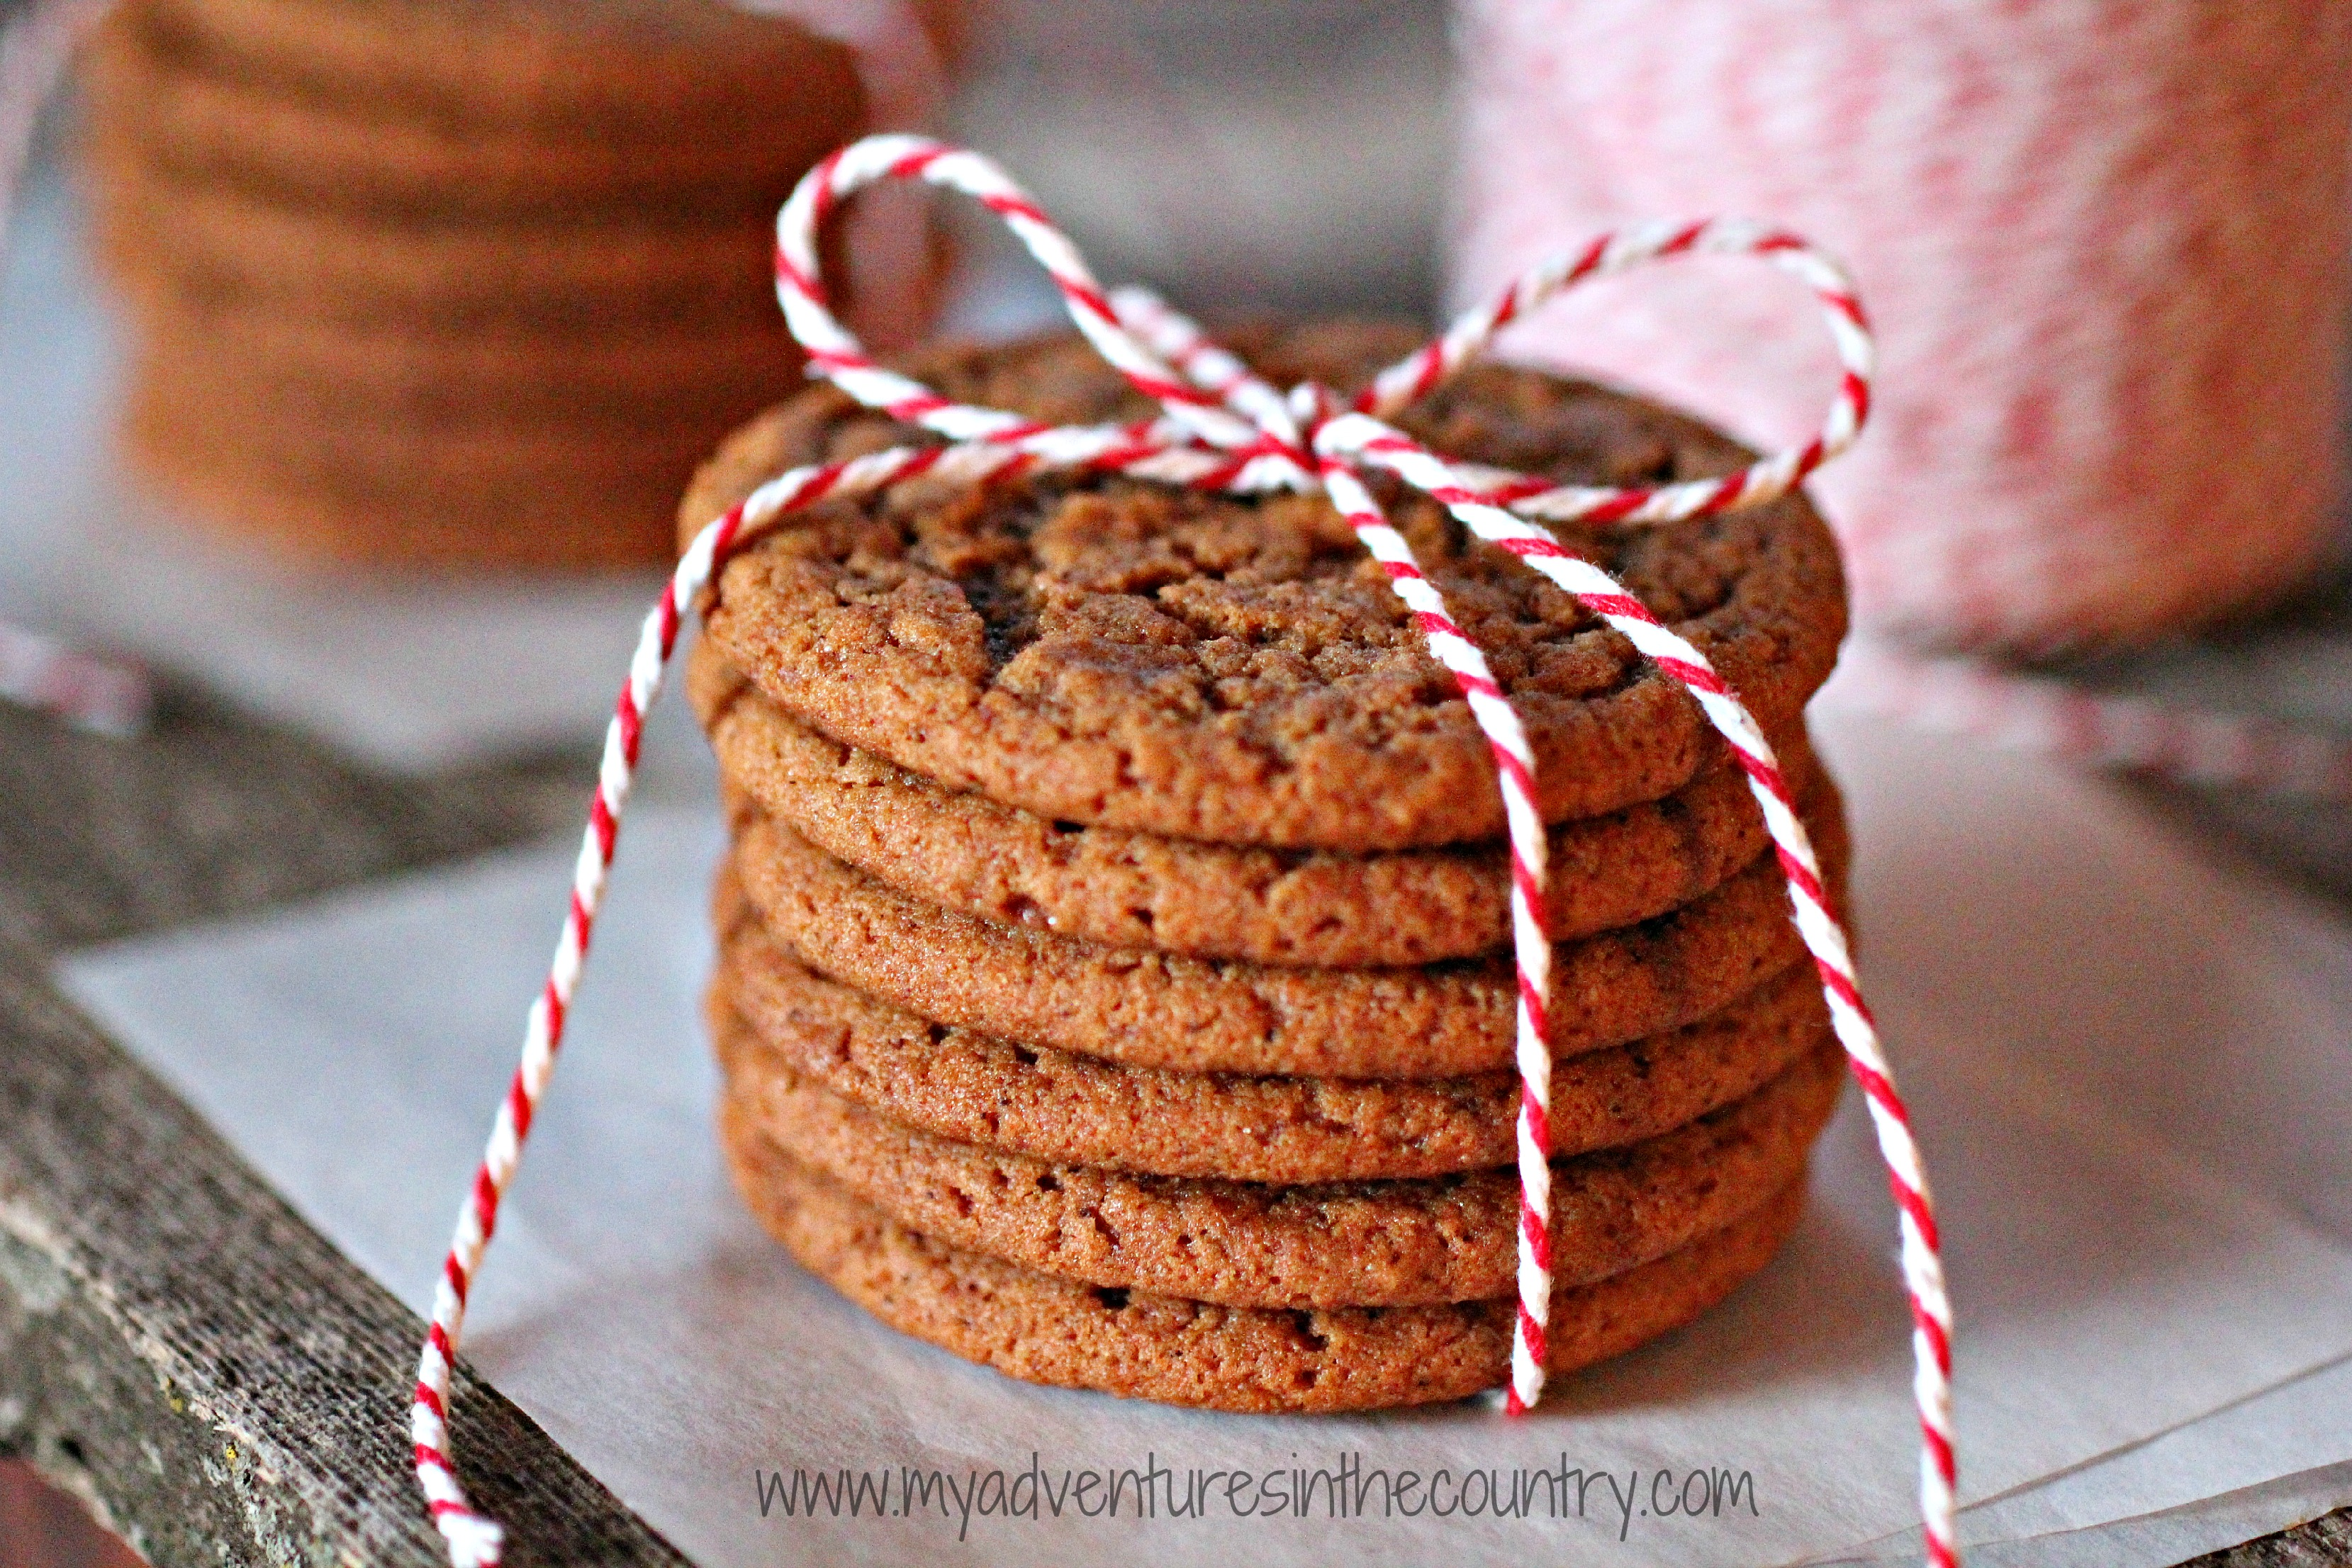 Monday's Mystery Recipe Episode 22: Spice-of-Life Cookies